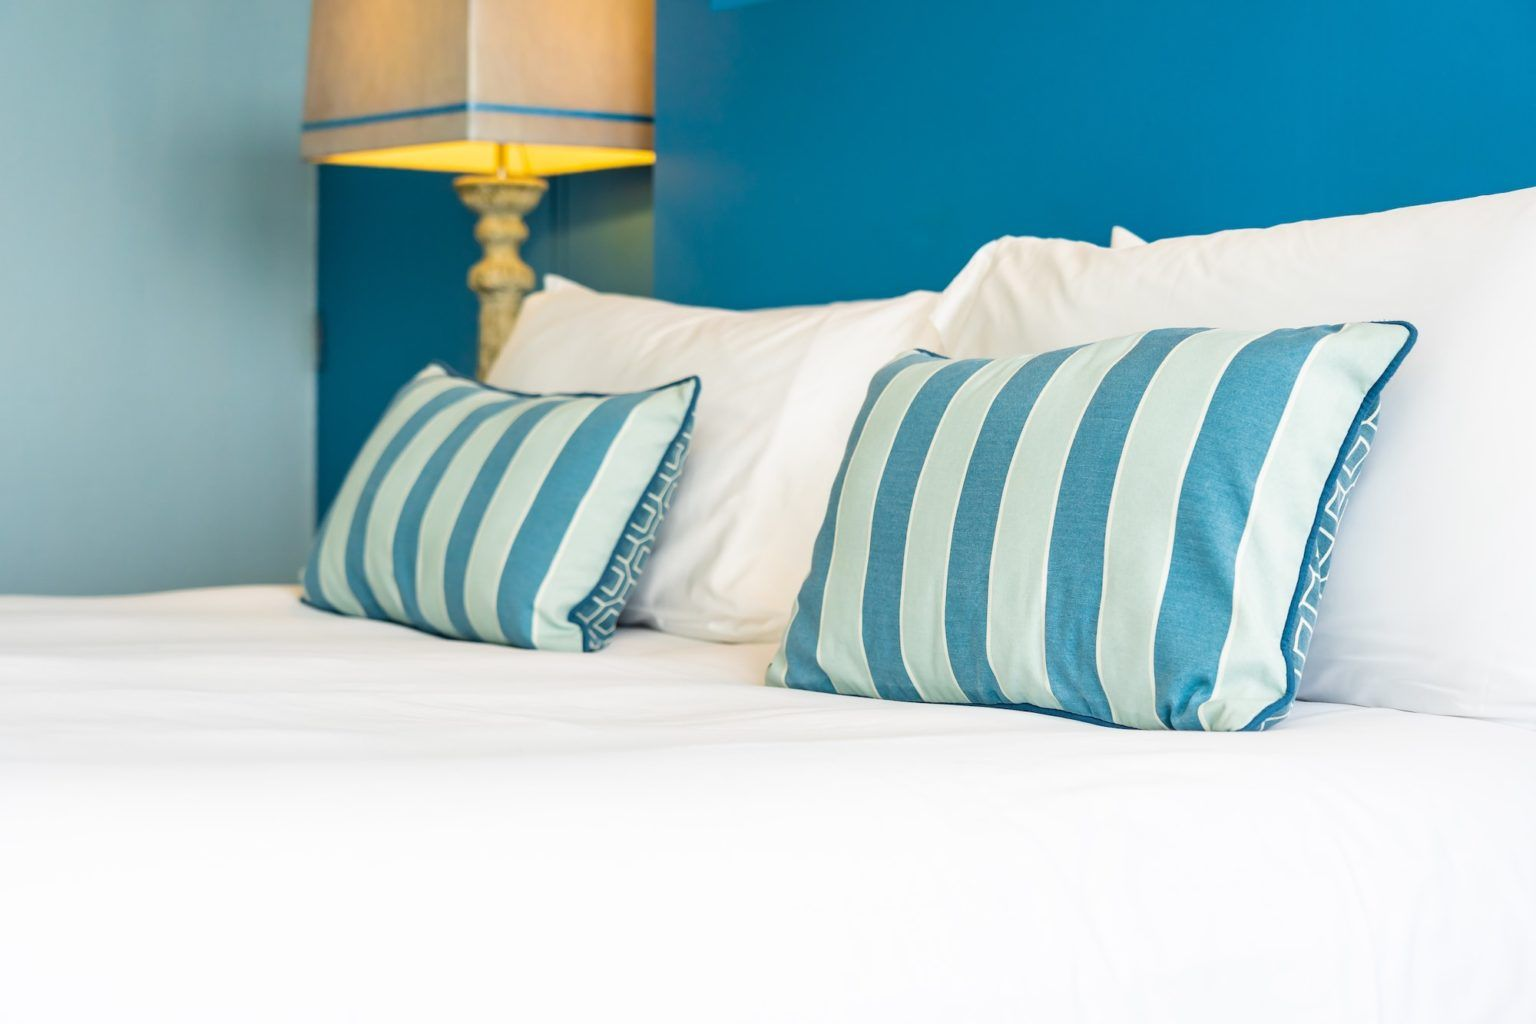 Tempurpedic Pillows An Overview Which Pillow Is Best For You Sunshine Slate Bed Pillows Pillows Hotel Pillows